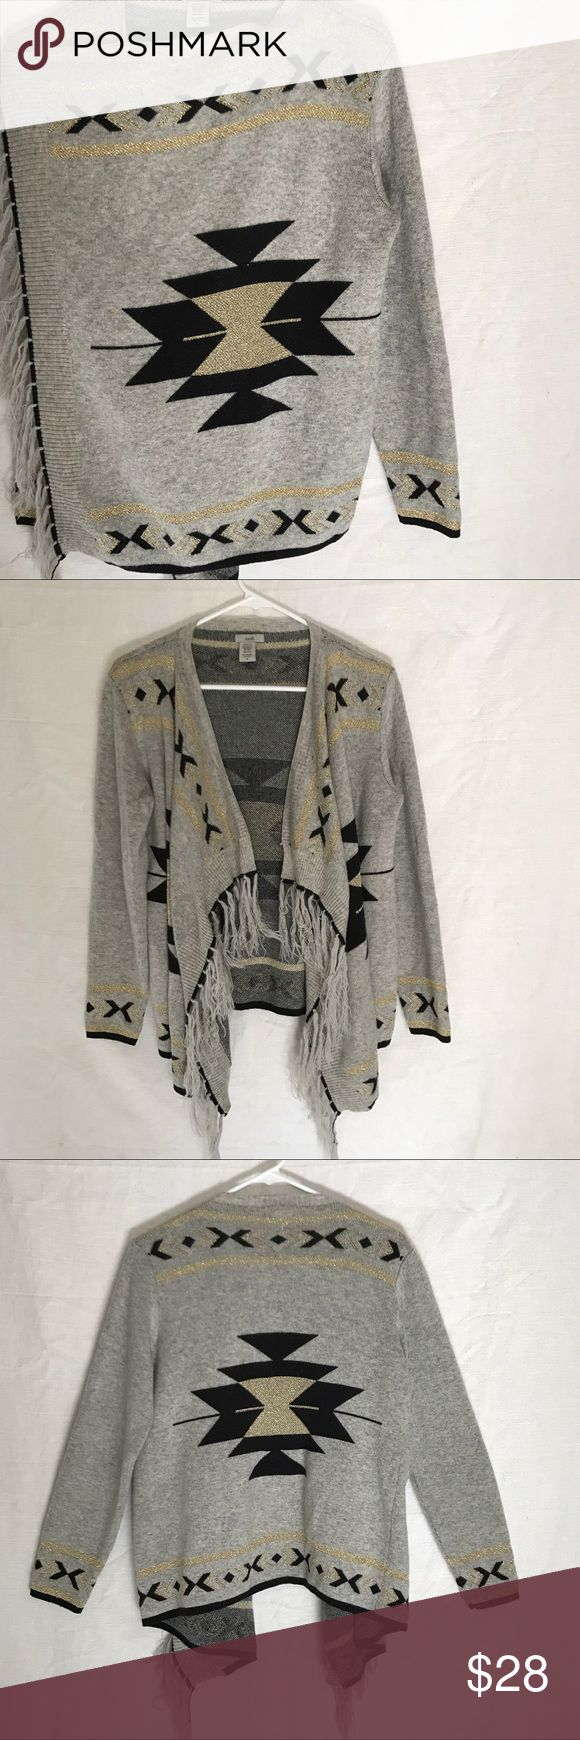 Anthropology Escio Cardigan Tribal W/ Fringe gray Beautiful Anthro Cardigan. Tribal black and gold pattern all over with fringe. Super soft!! Like New! Anthropologie Sweaters Cardigans